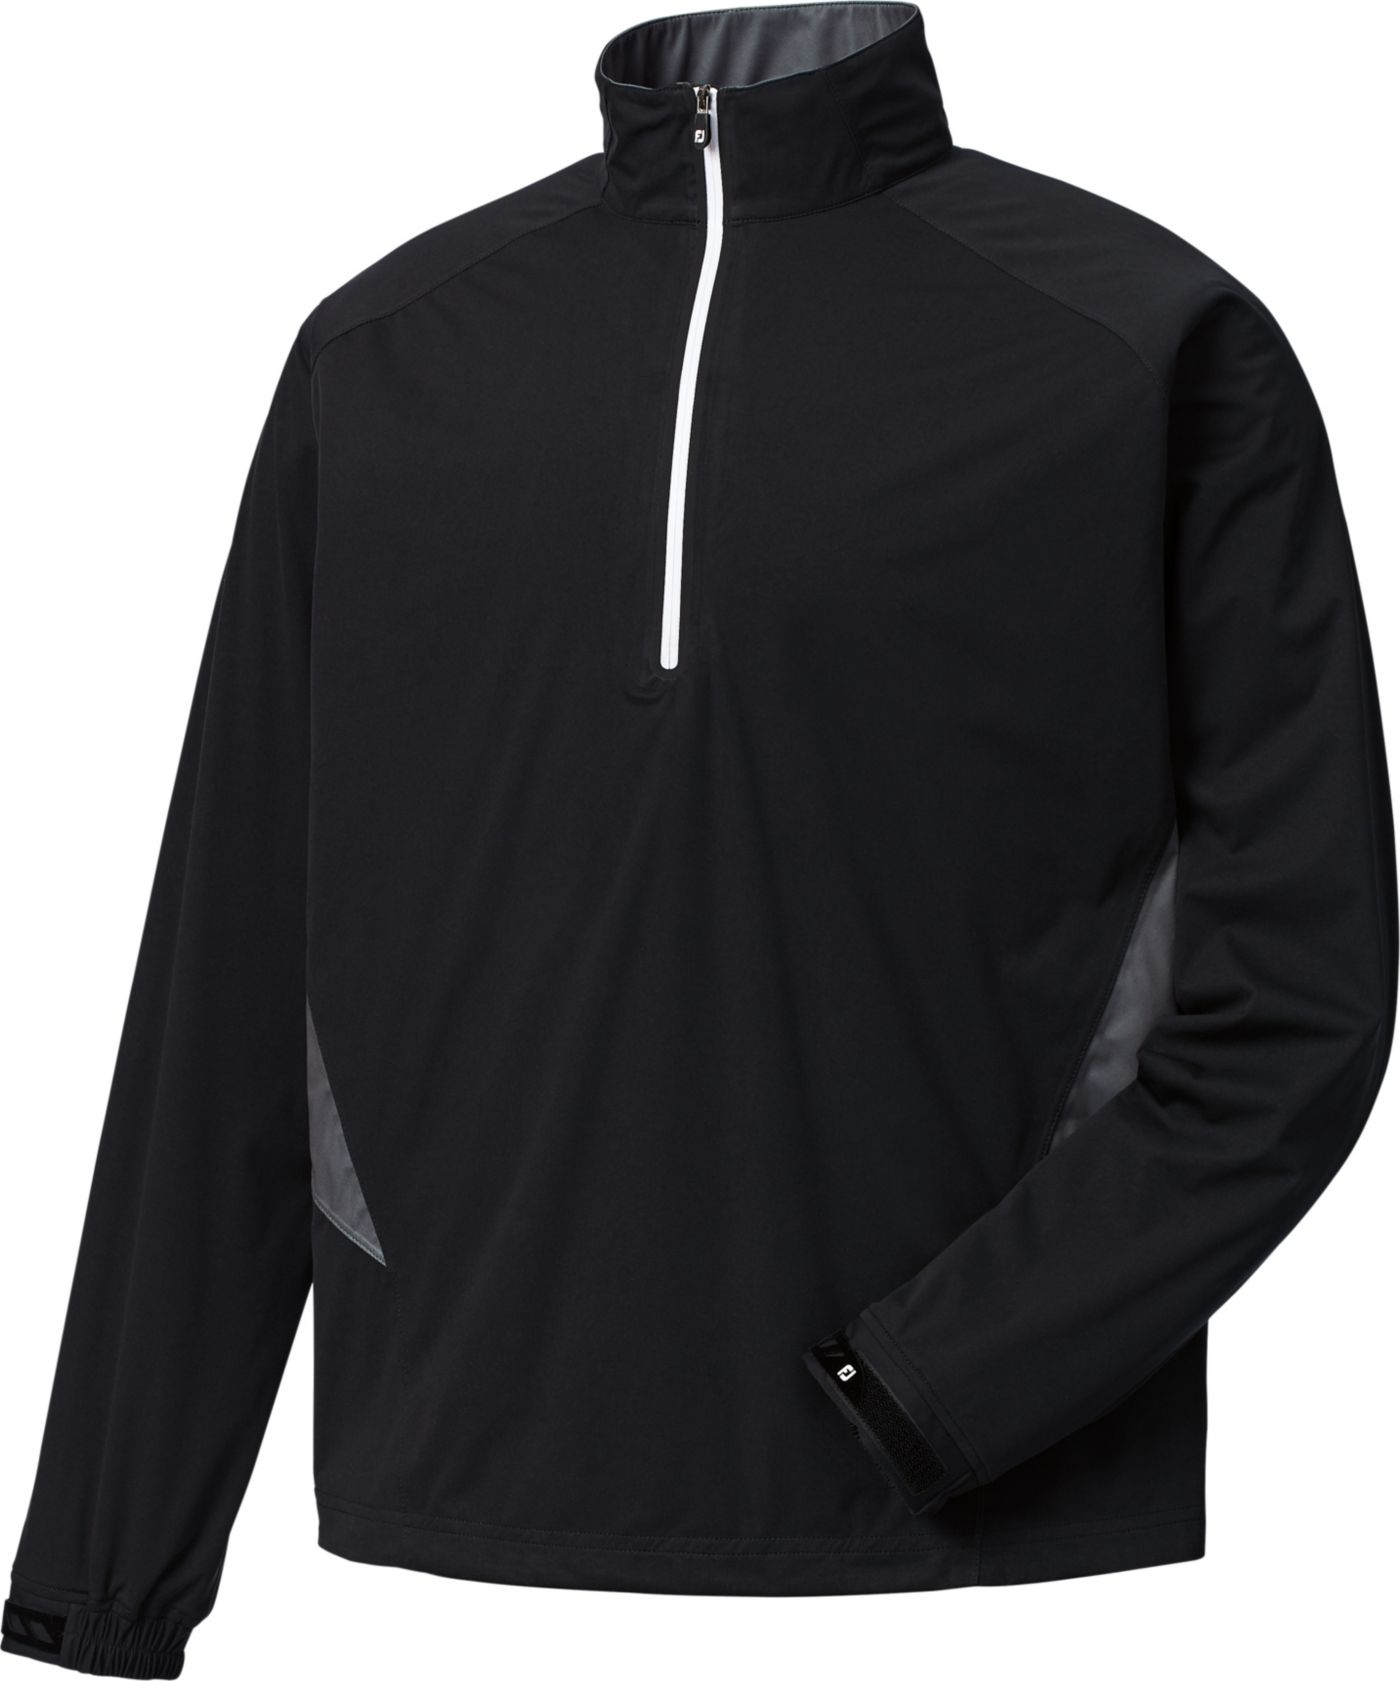 FootJoy Men's HydroKnit Golf Pullover